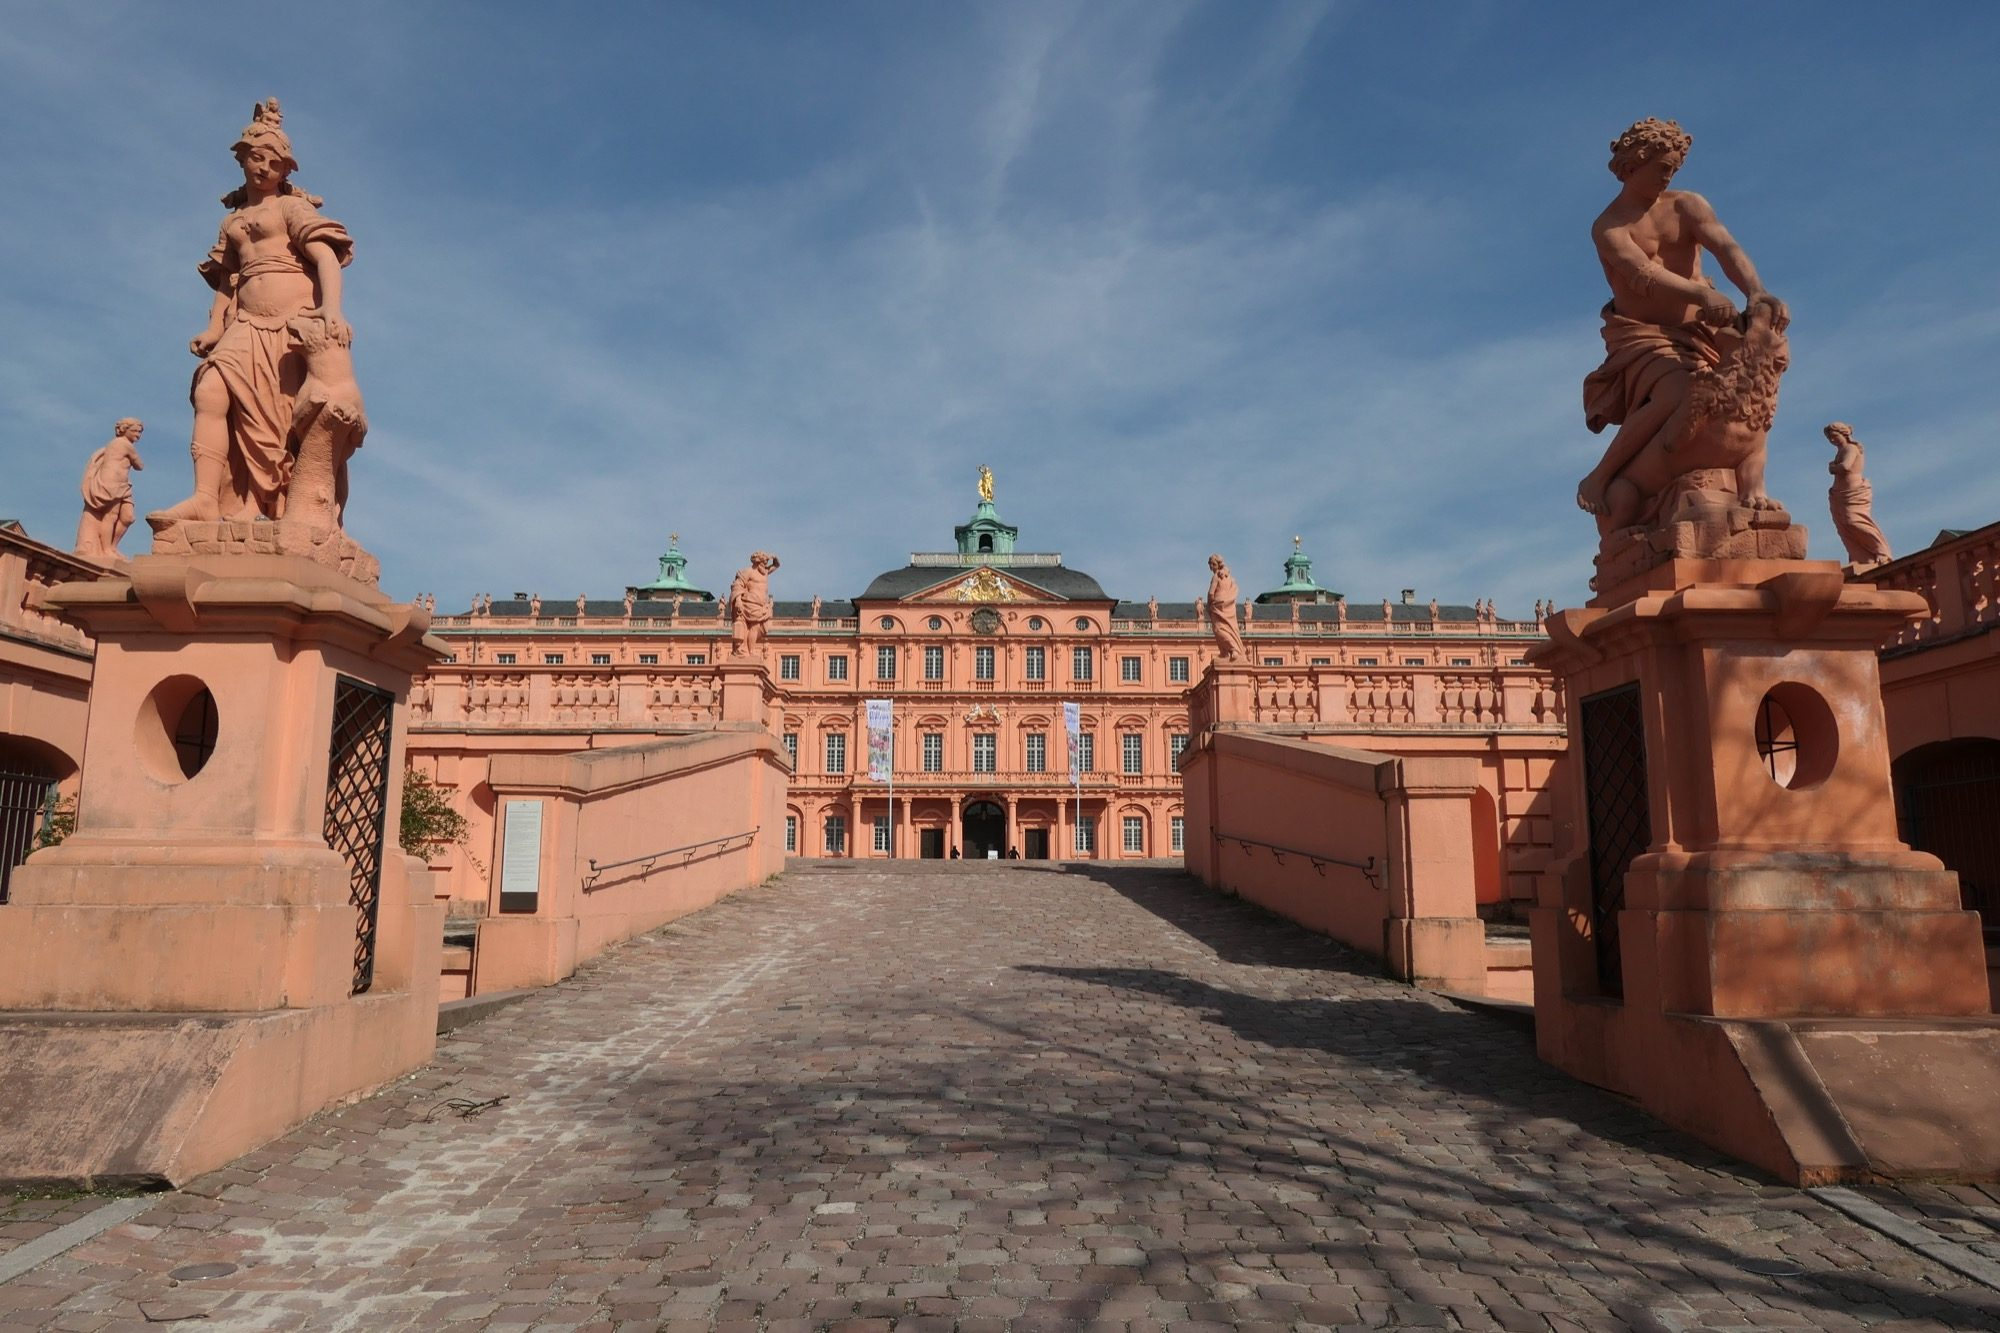 Entrance to Rastatt Residential Palace.